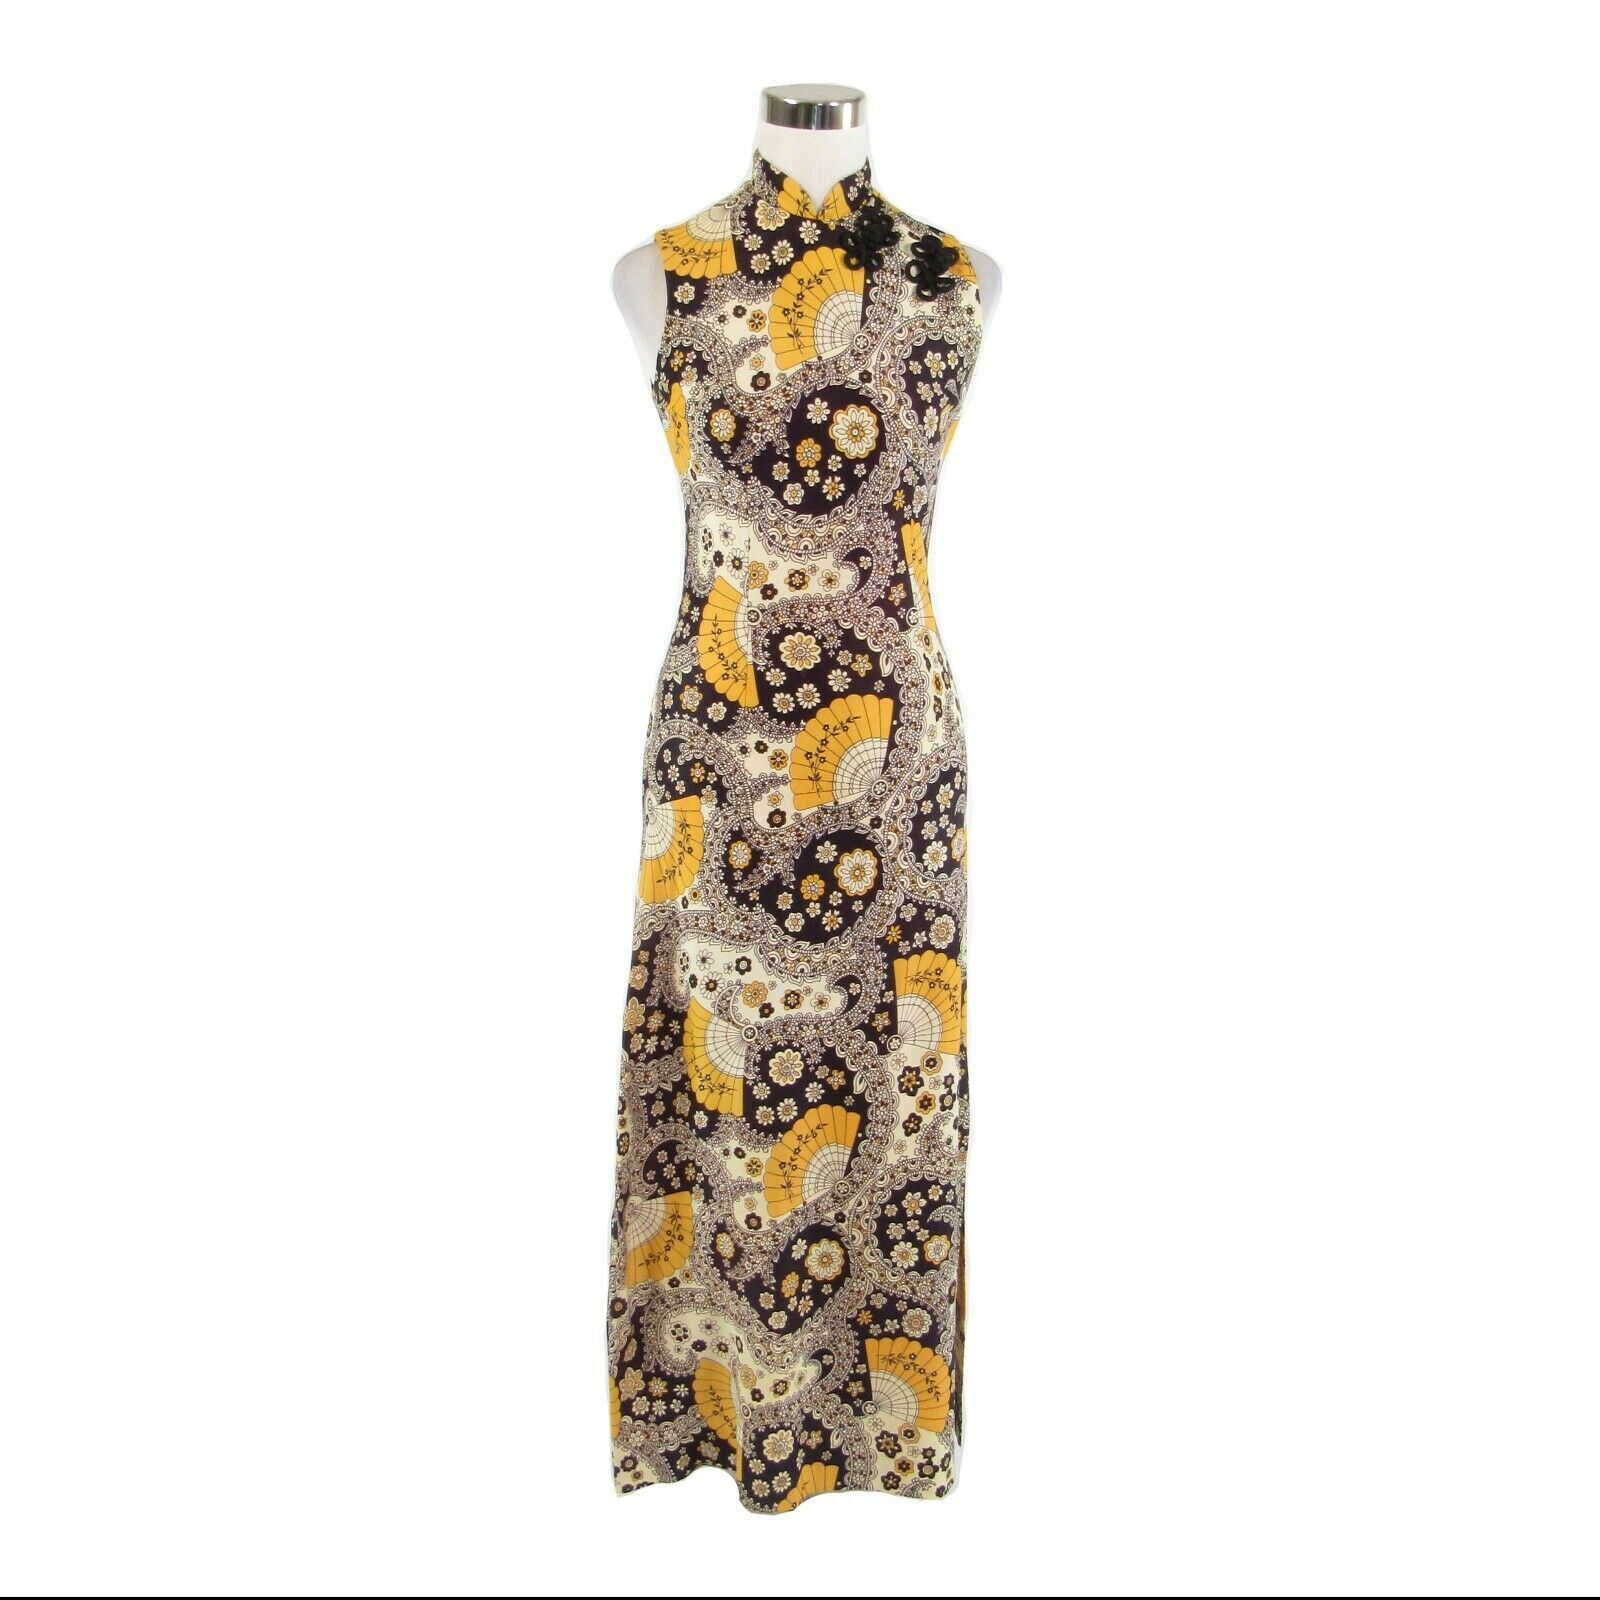 Midnight blue yellow paisley sleeveless vintage maxi dress S